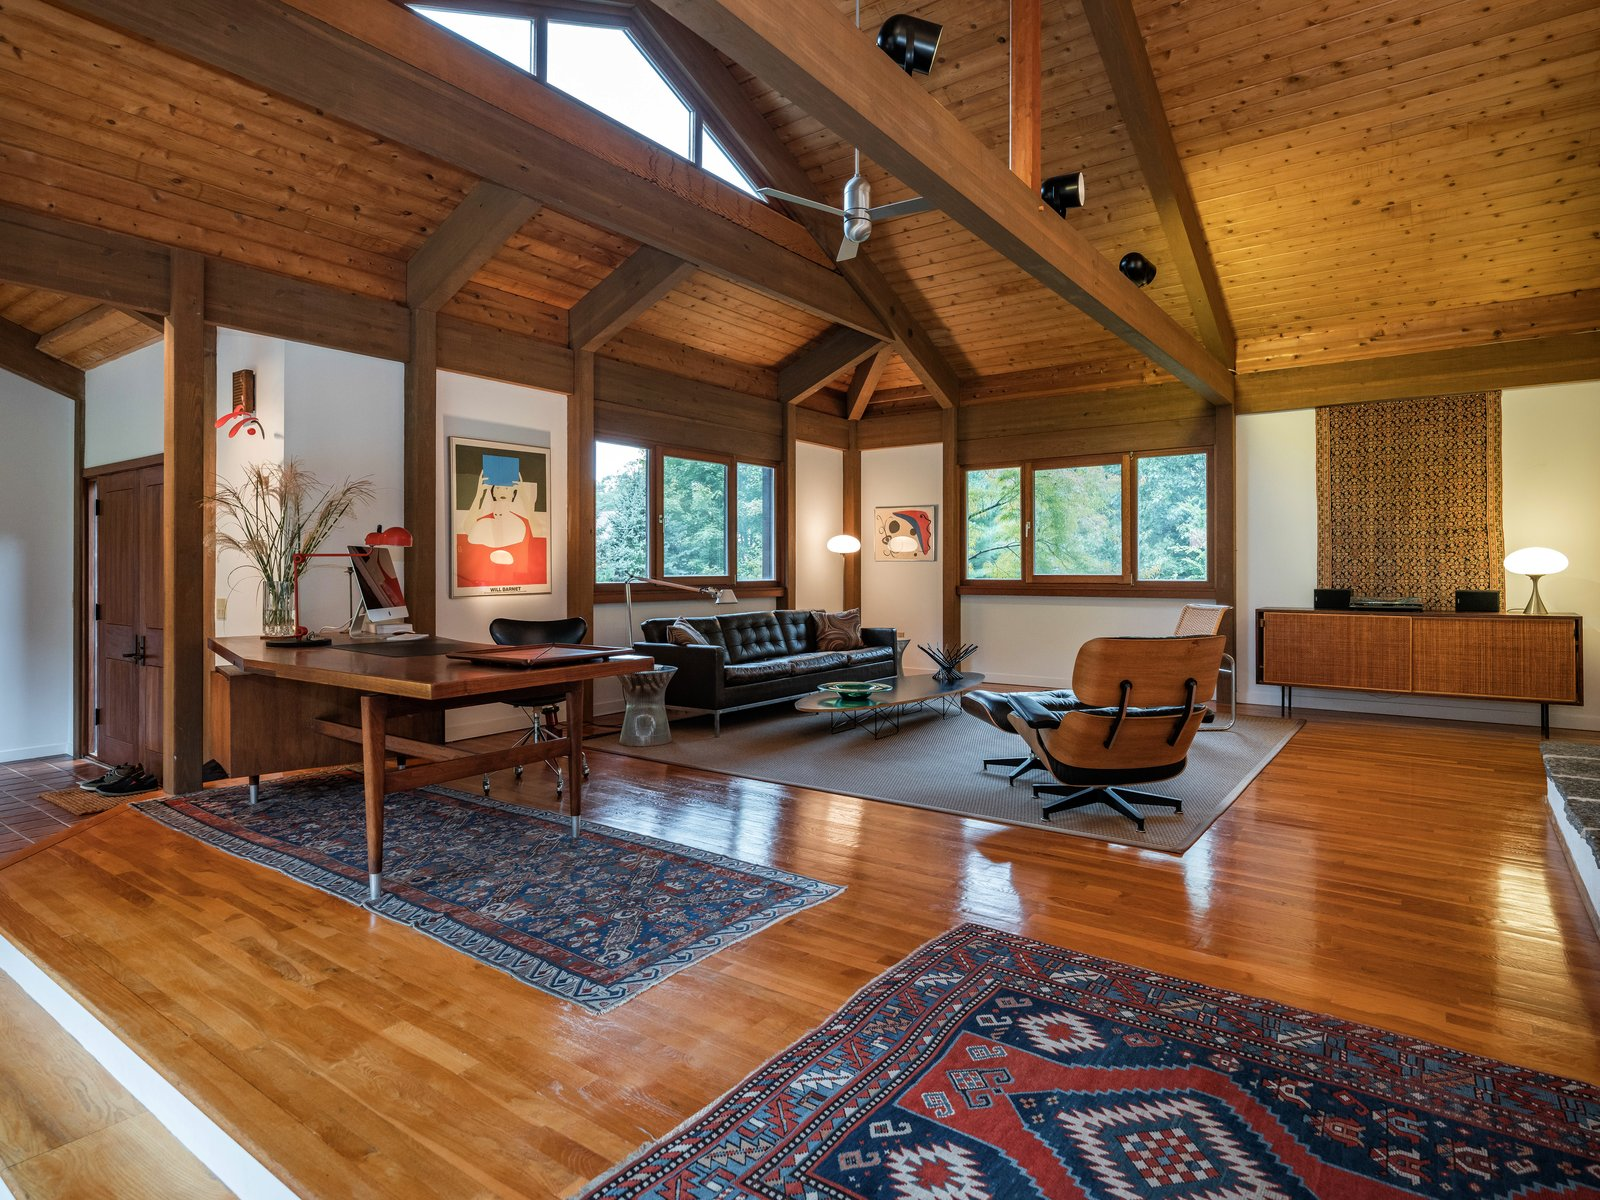 A Midcentury Inspired Post And Beam Home In Connecticut